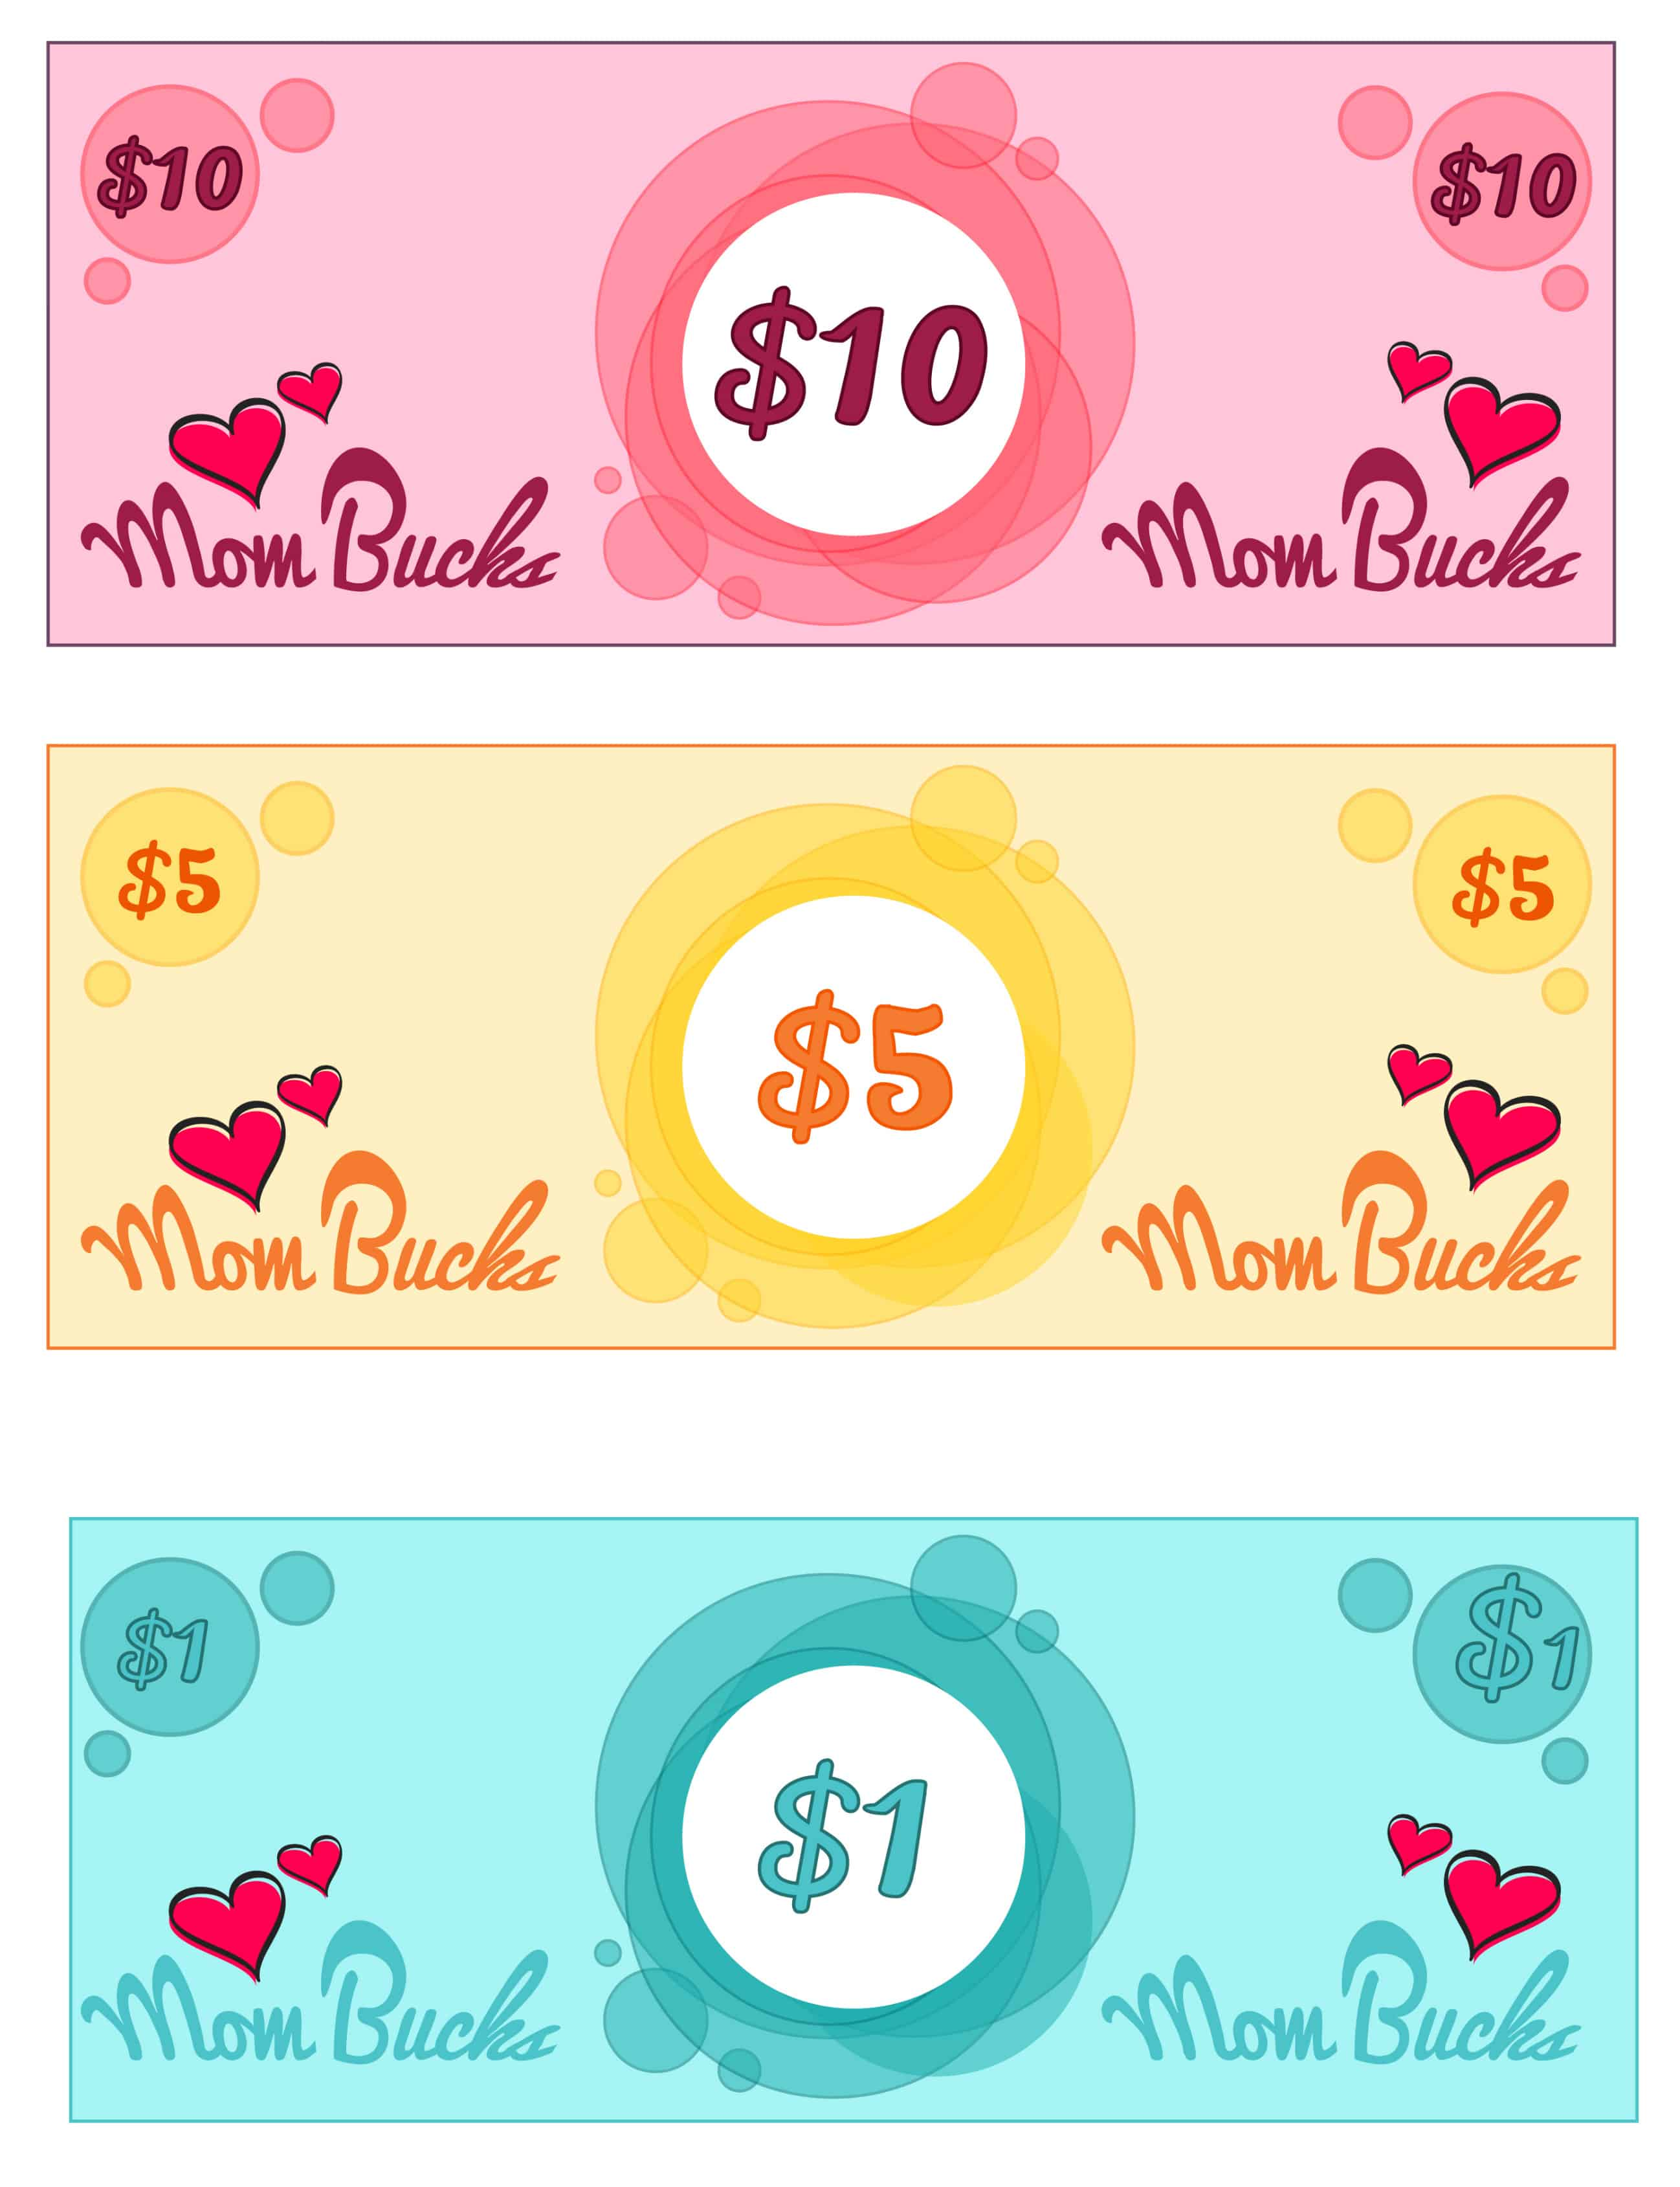 Choose from a mom bucks printable $10, $5, or $1 for your rewards system.